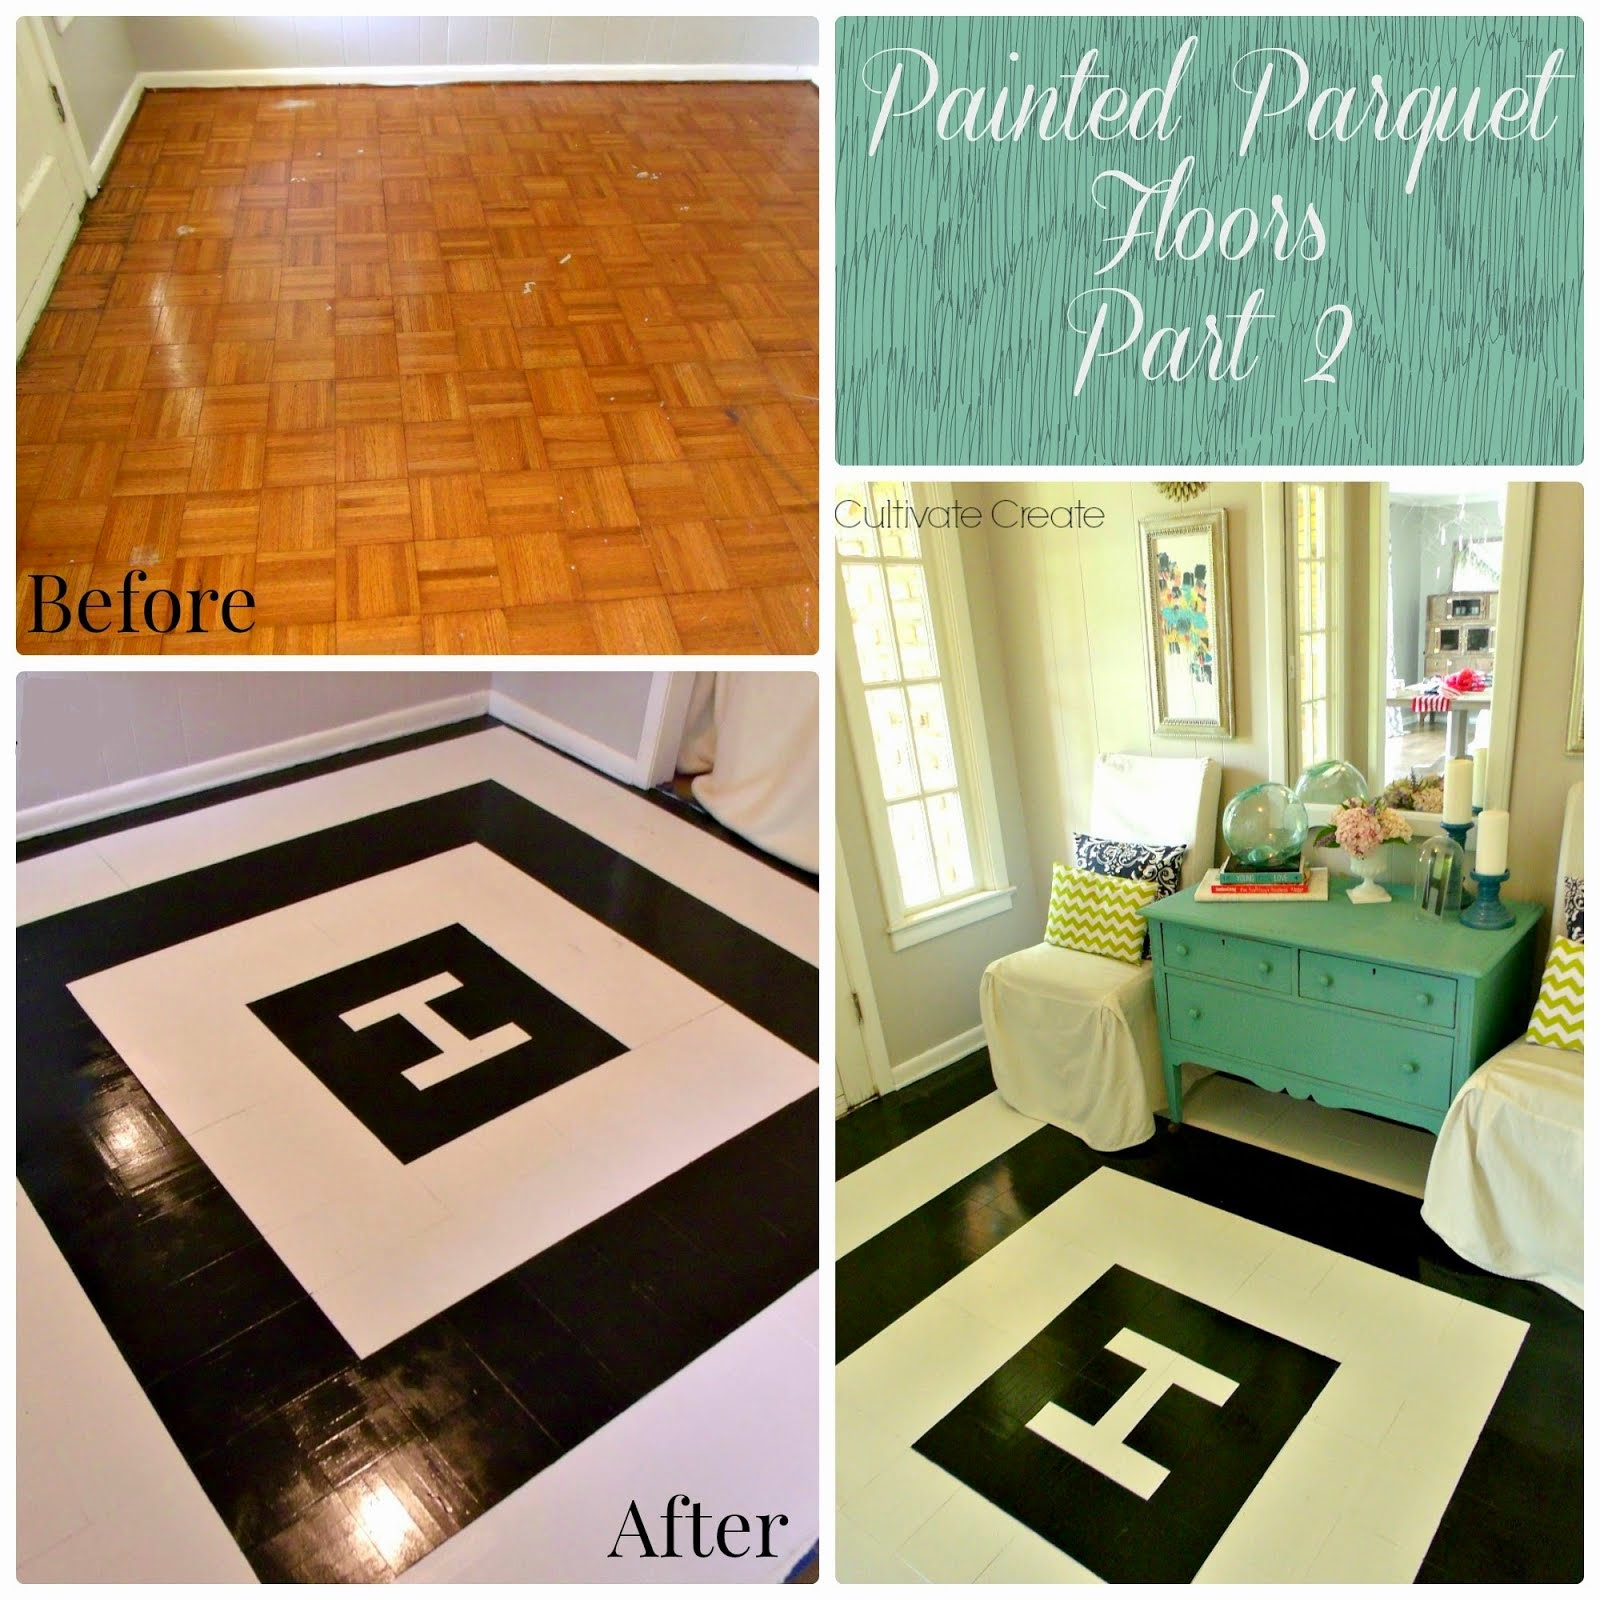 DIY Painted Parquet Floor